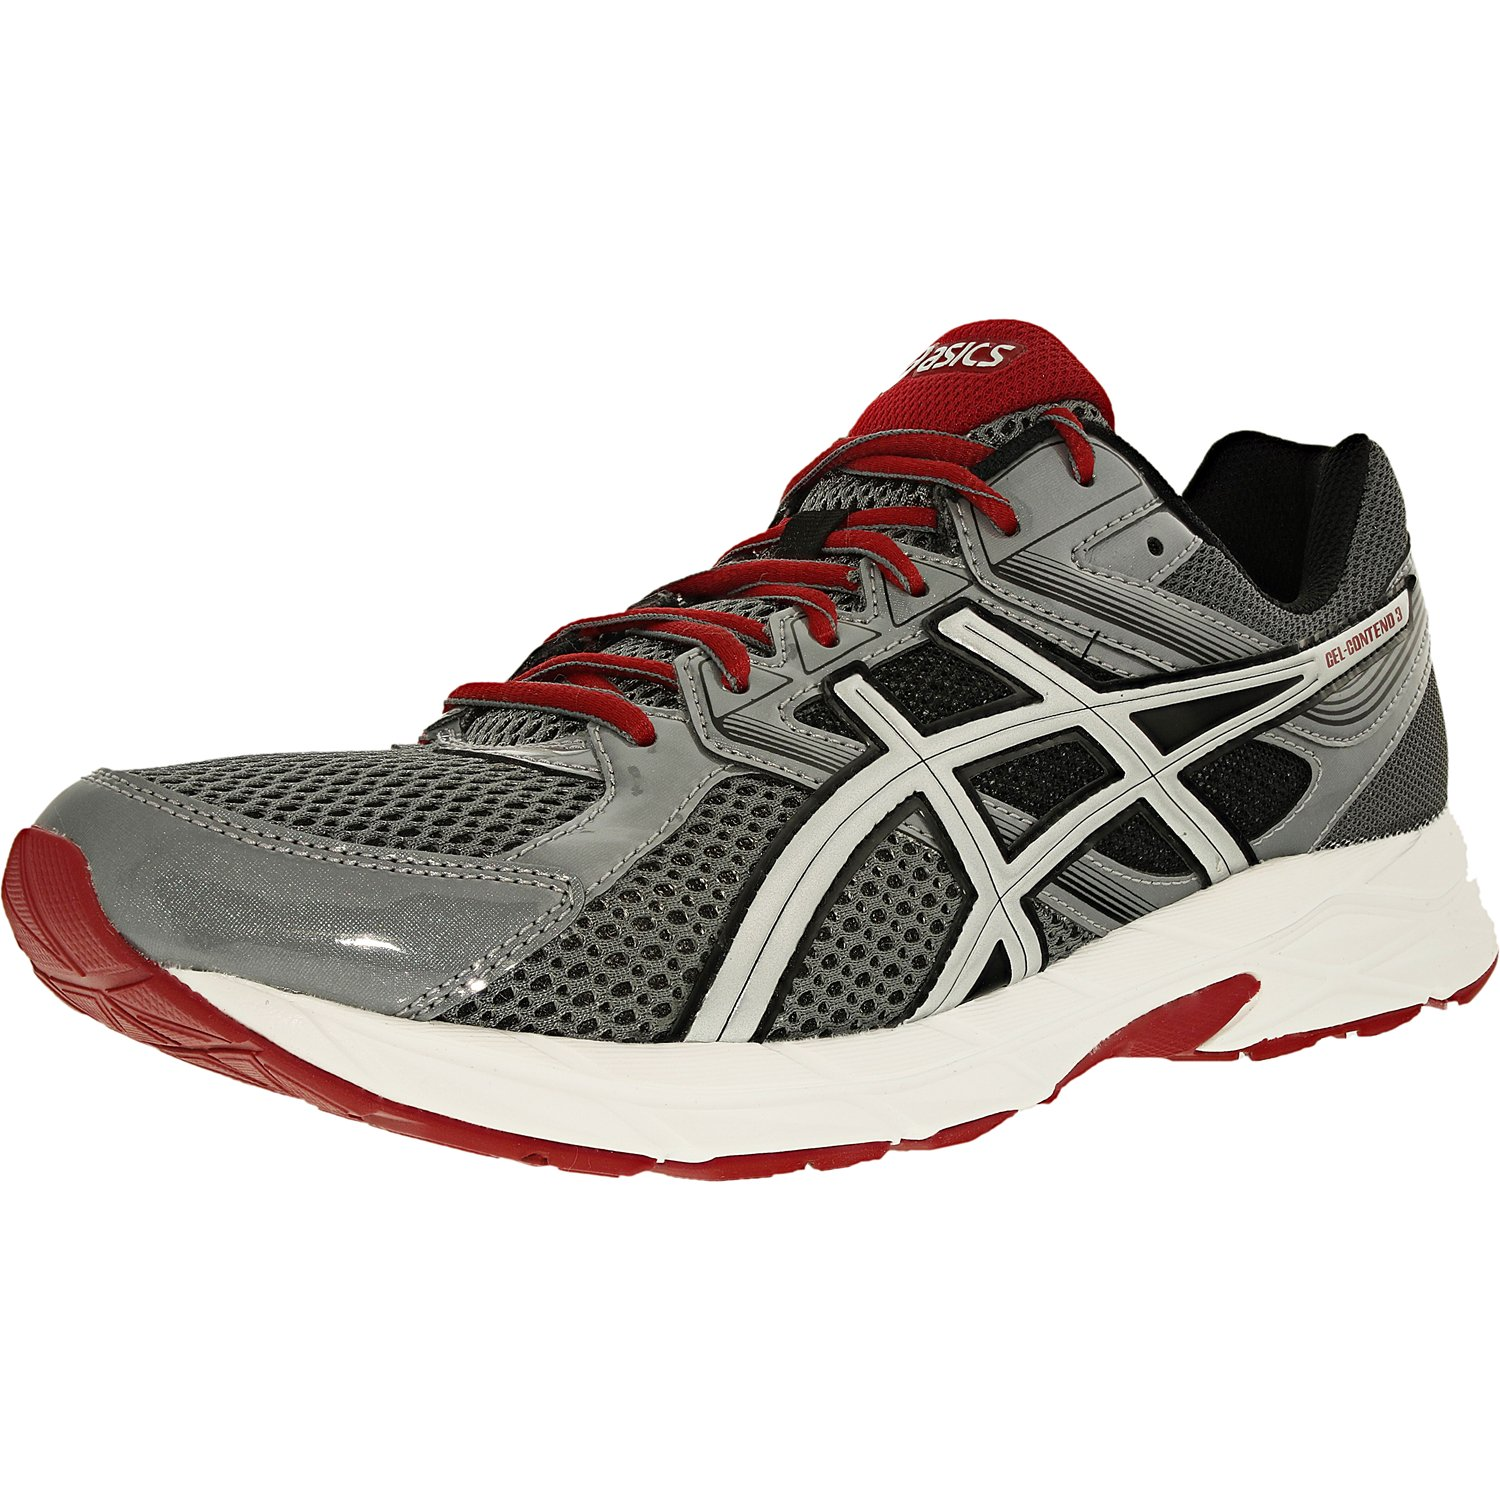 Asics Men's Gel-Contend 3 Titanium/Silver/Red Ankle-High Running Shoe - 8M